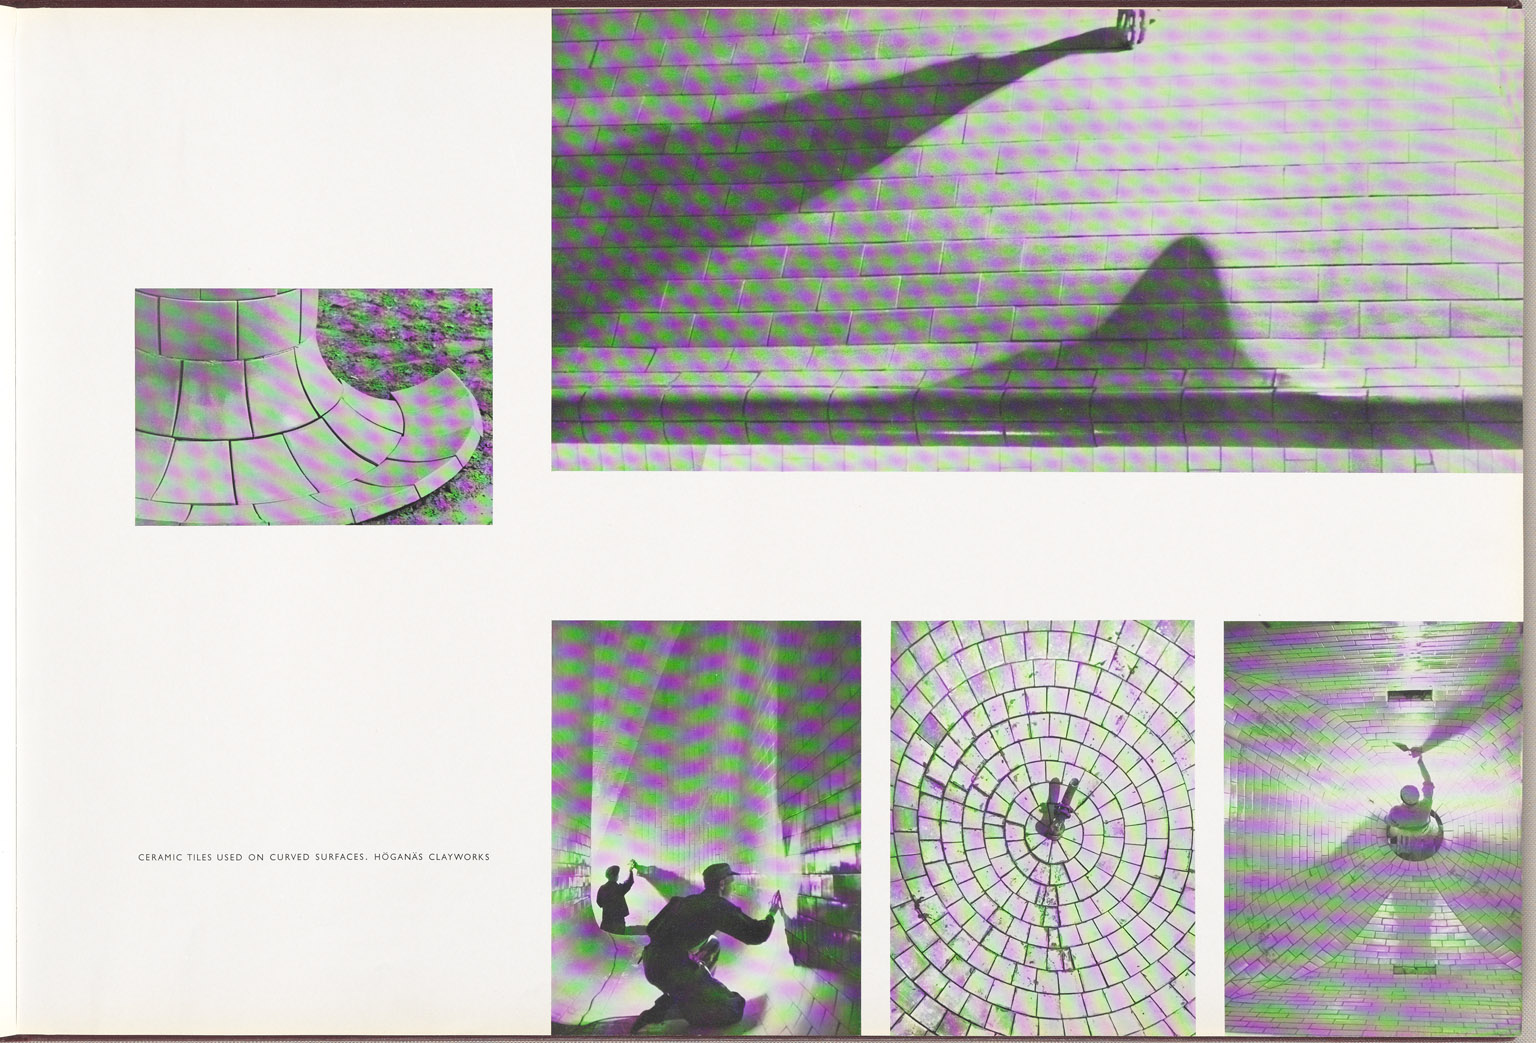 Ceramic tiles used on curved surfaces Hoganas Clayworks Sydney Opera House Red Book